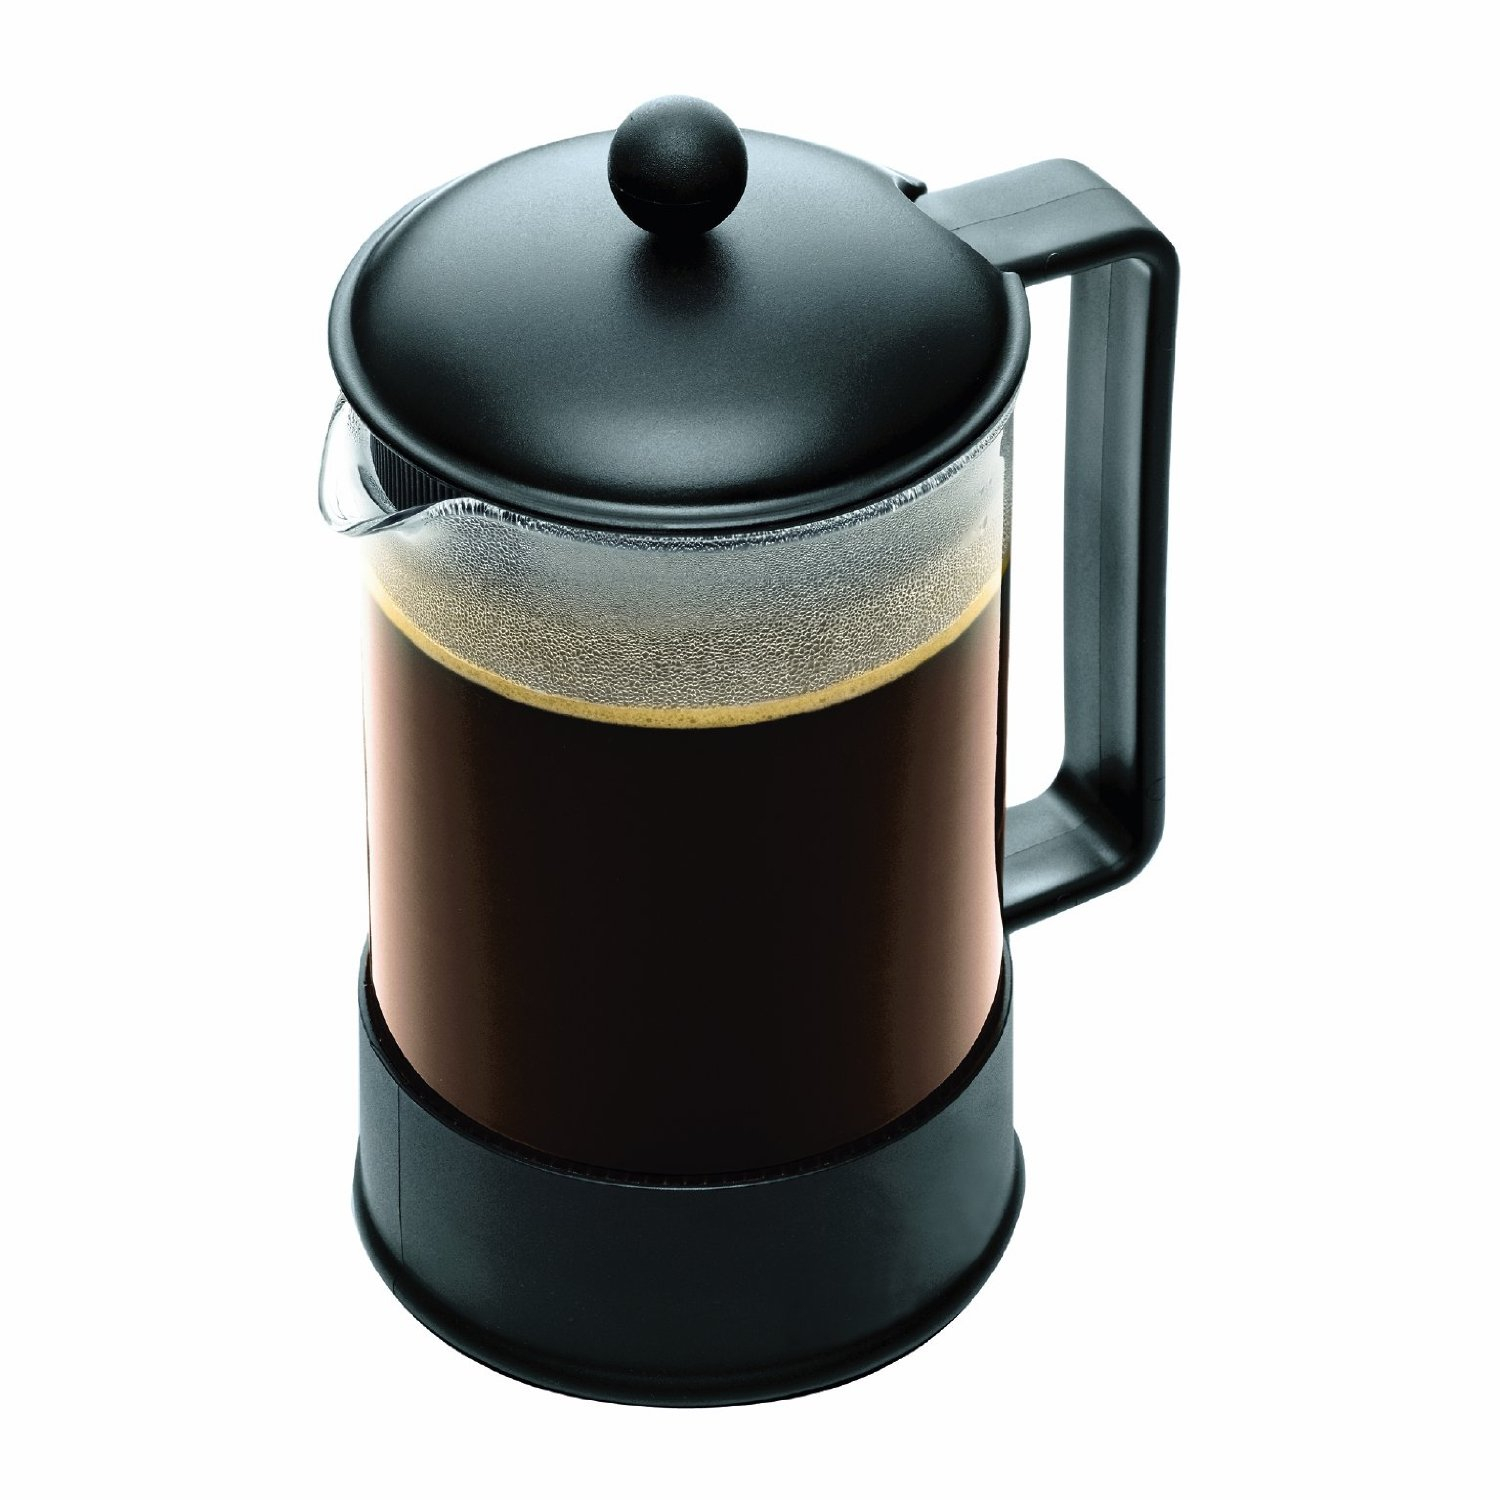 Bodum Brazil Glass French Press Coffee Maker with Black Lid, 12 Cup